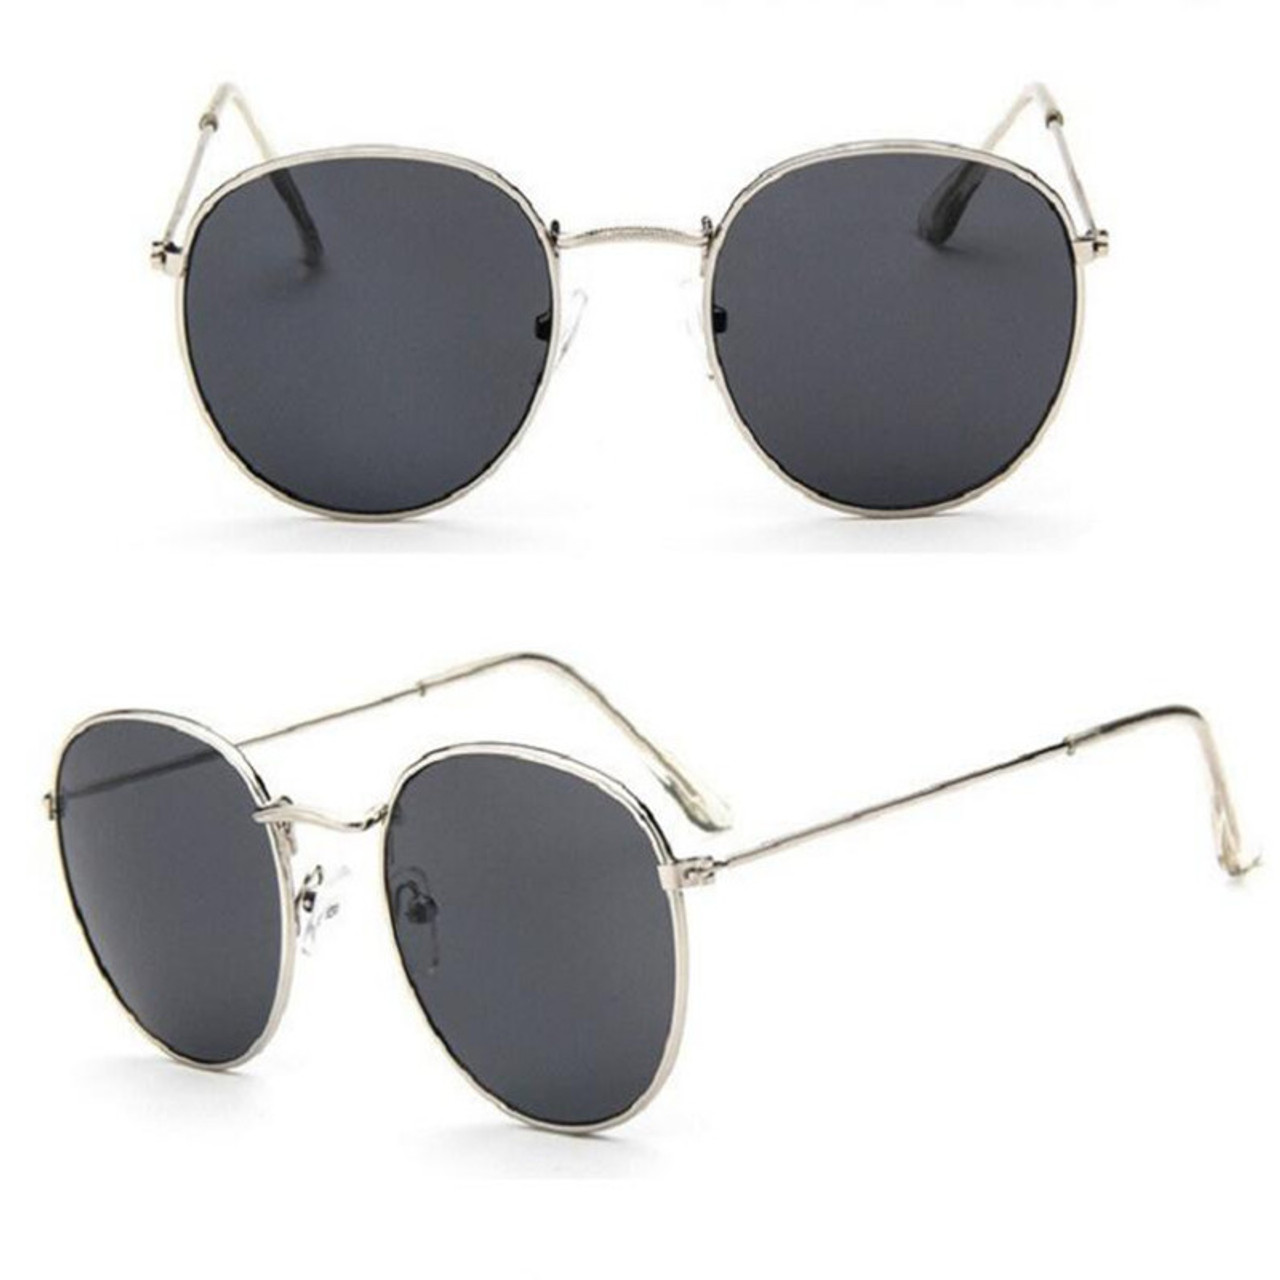 091bb2c79468 ... Luxury Brand Design Round Sunglasses Women Men Brand Designer Vintage  Retro Mirror Sun Glasses For Women ...